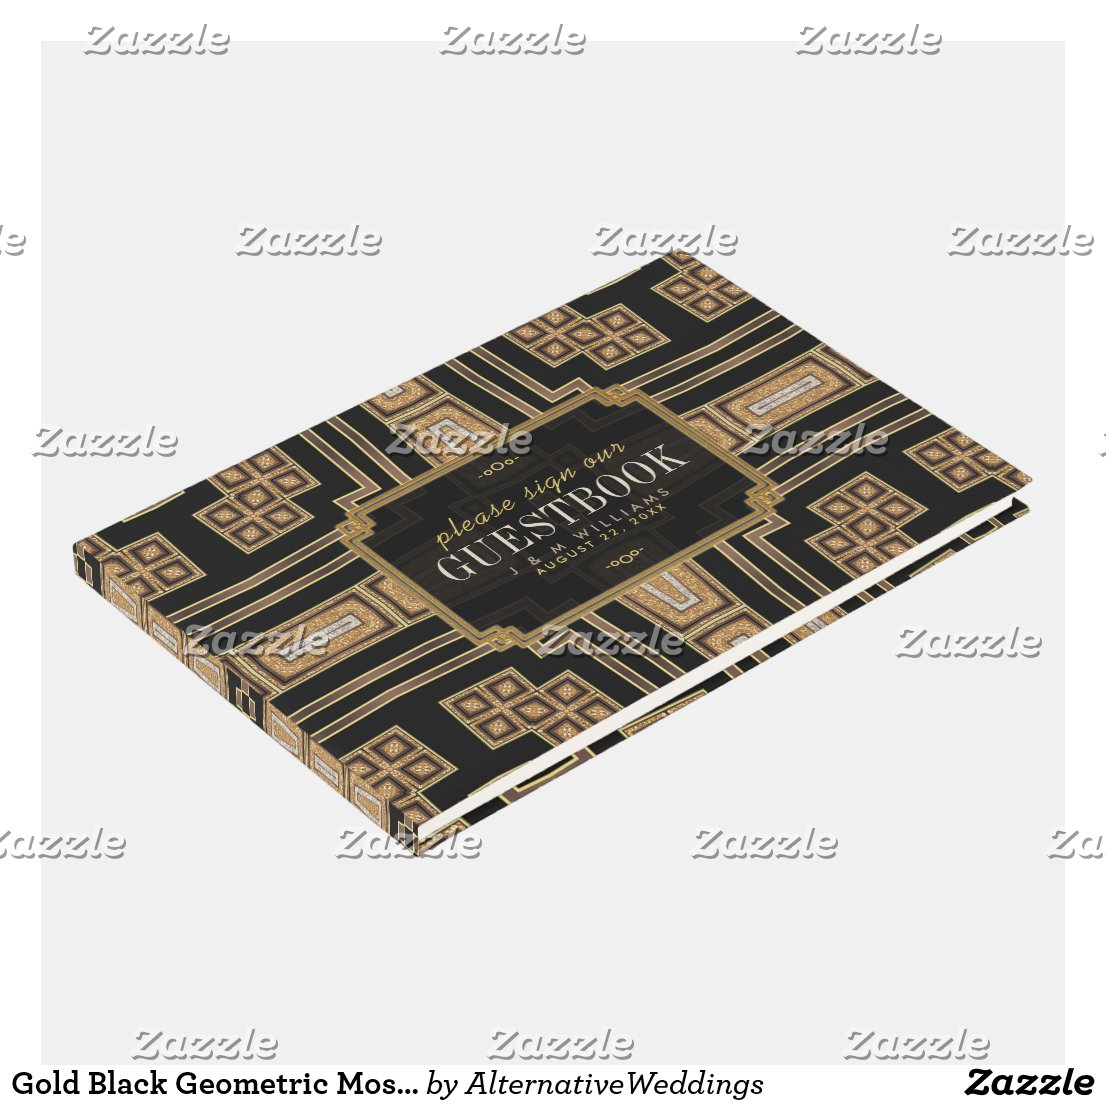 Gold Black Geometric Mosaic Pattern Wedding Guest Book by AlternativeWeddings